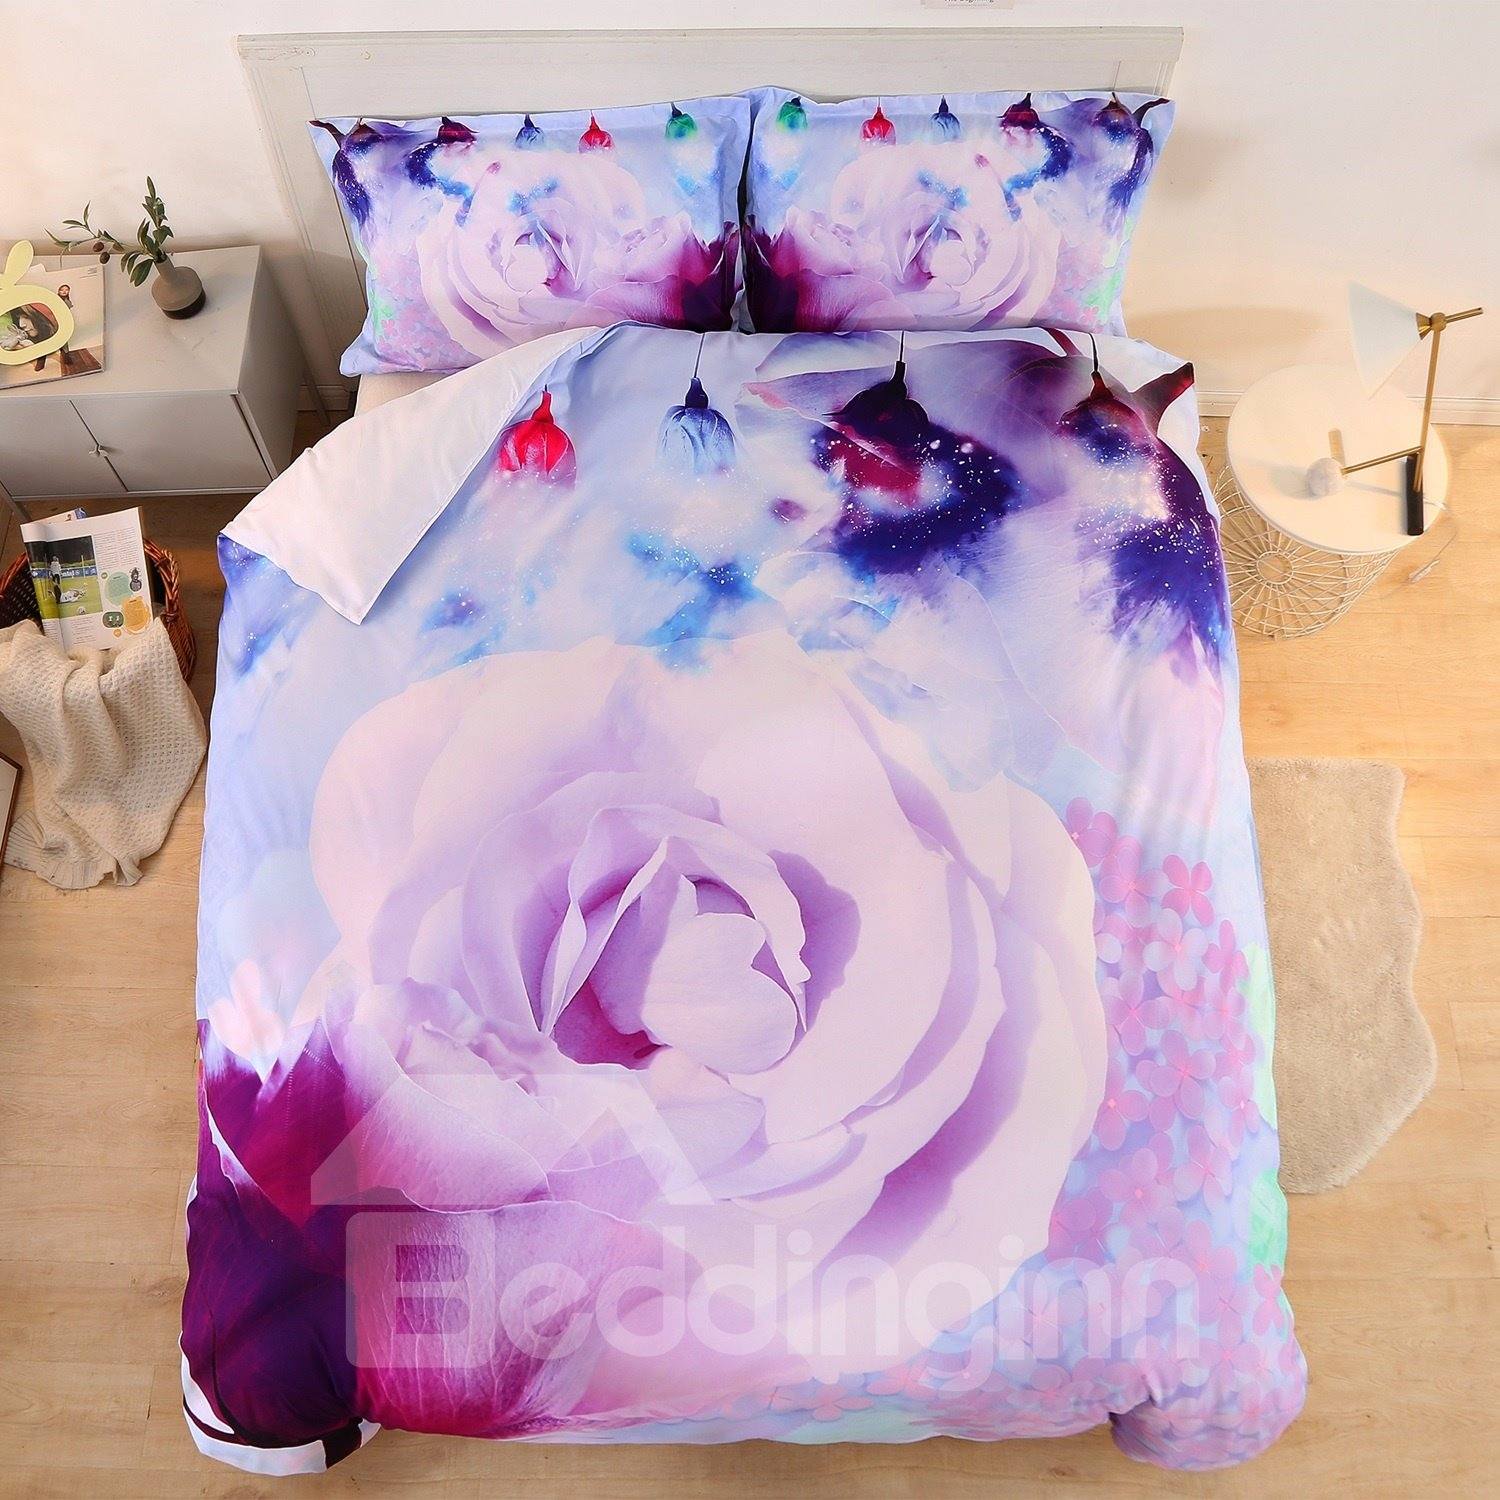 Lilac Rose Soft 3D Printed Polyester 3-Piece Bedding Sets/Duvet Covers